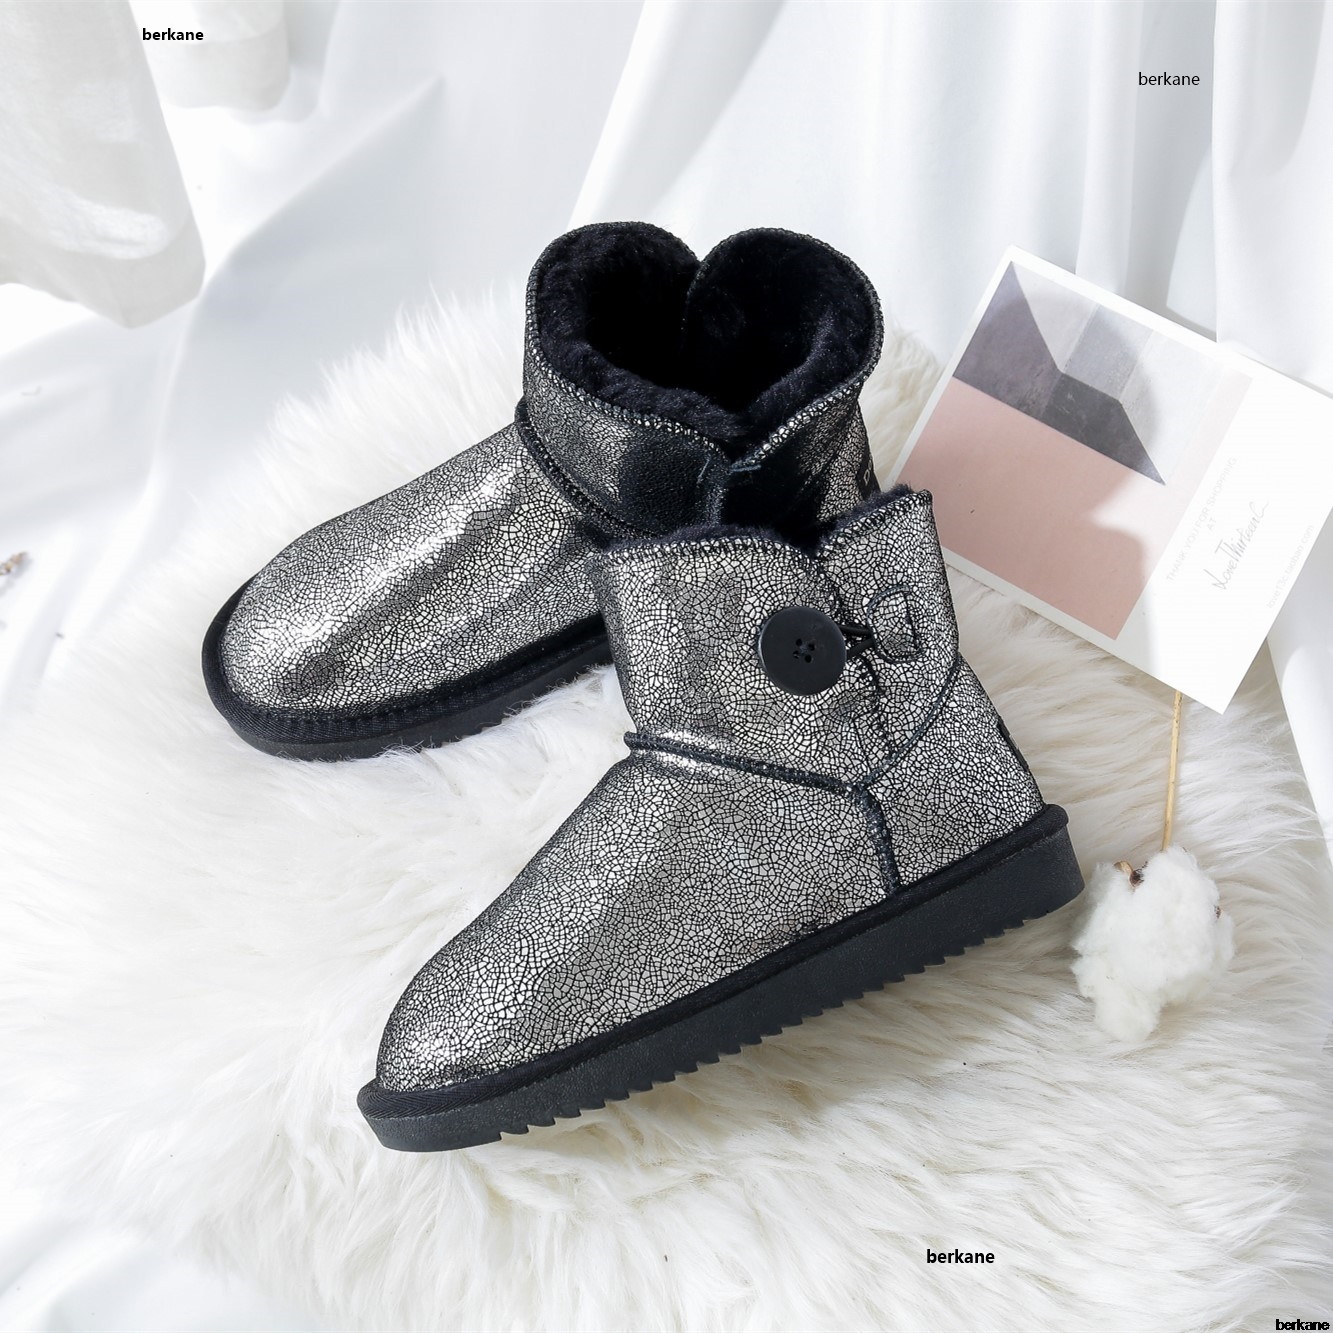 Genuine Leather Ankle Snow Boots Cow Suede Fur Button 2019 Plush Female Winter Warm Shoes Snowboots Flats Large Size 48 BlingGenuine Leather Ankle Snow Boots Cow Suede Fur Button 2019 Plush Female Winter Warm Shoes Snowboots Flats Large Size 48 Bling